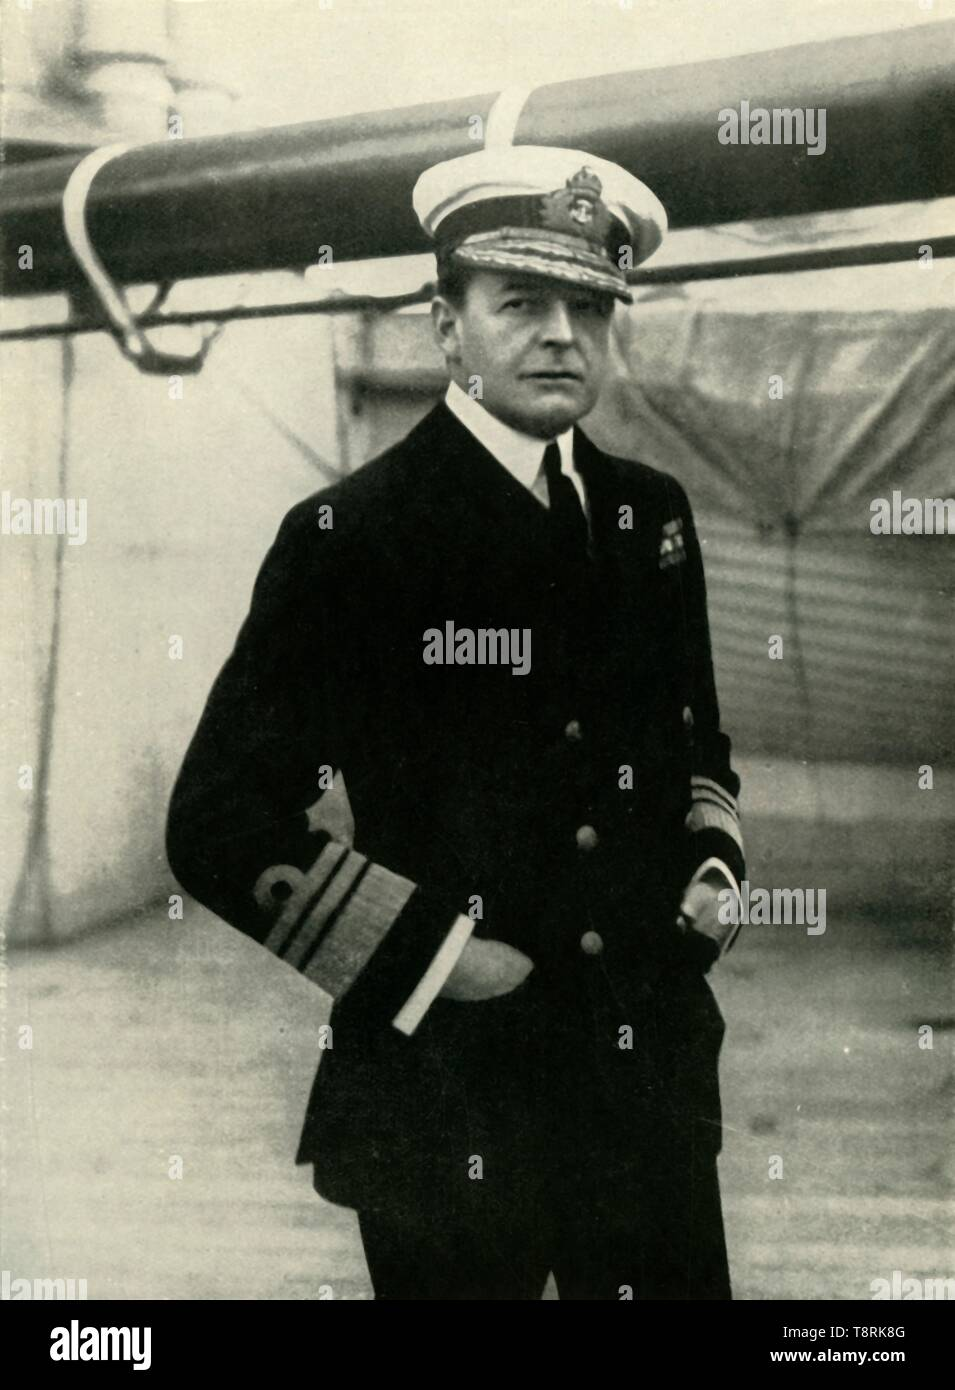 """'Admiral Earl Beatty', 1910s, (1919). Portrait of Admiral David Beatty, 1st Earl Beatty (1871-1936), British naval commander during World War I. Beatty commanded the Royal Navy's battlecruisers at the Battle of Jutland, 31 May 1916. He was appointed Commander-in-chief of the Grand Fleet in 1917, and Admiral of the Fleet and First Sea Lord in 1919. From """"The History of the Great European War: its causes and effects"""", Vol. VIII, by W. Stanley Macbean Knight. [Caxton Pulishing Company, Limited, London, 1919] - Stock Image"""